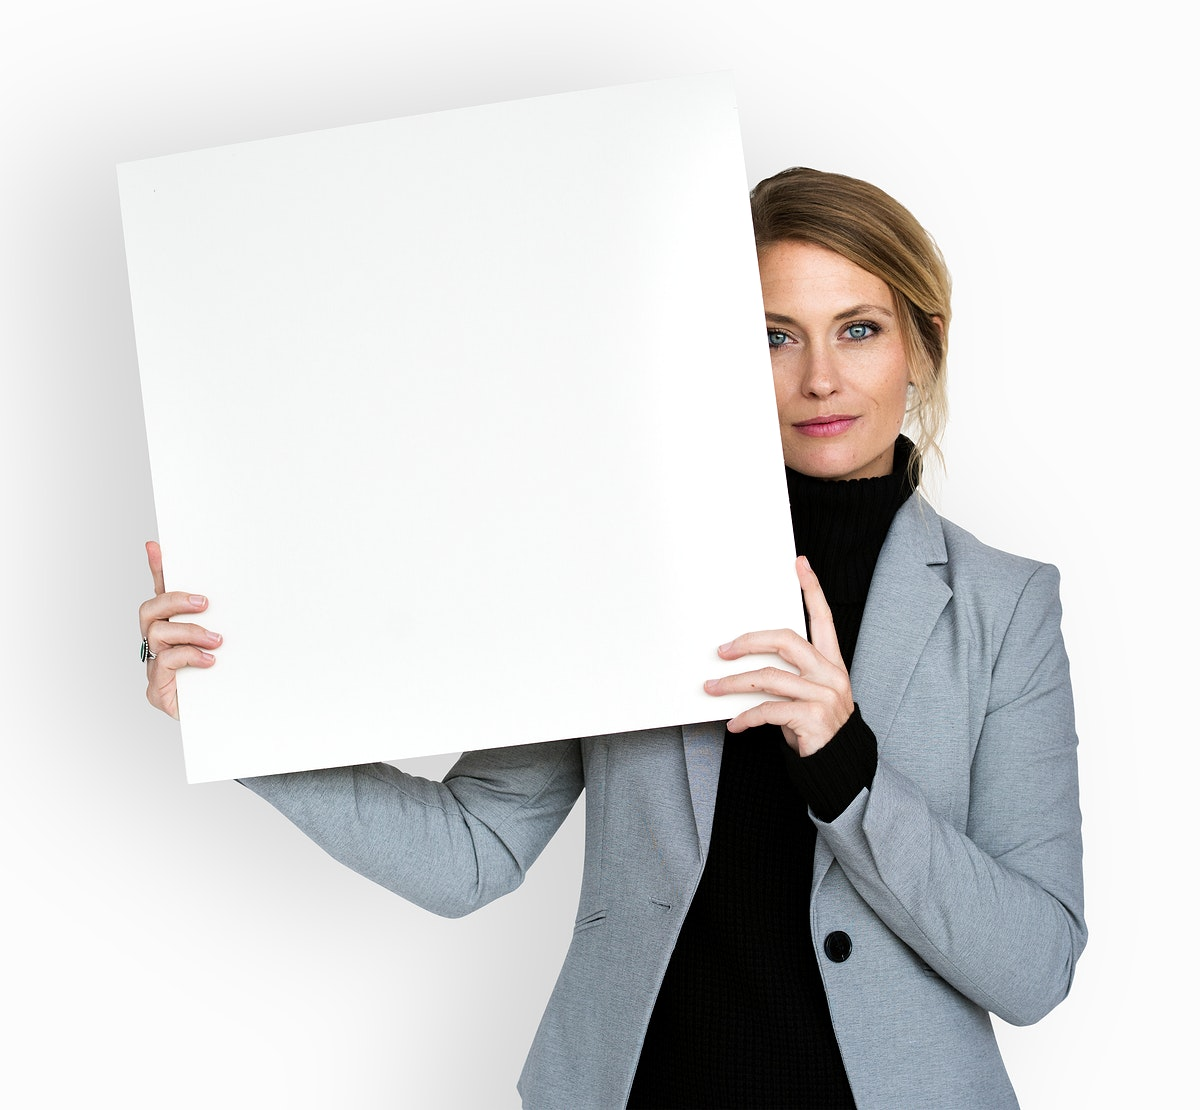 Caucasian Business Woman Holding Paper